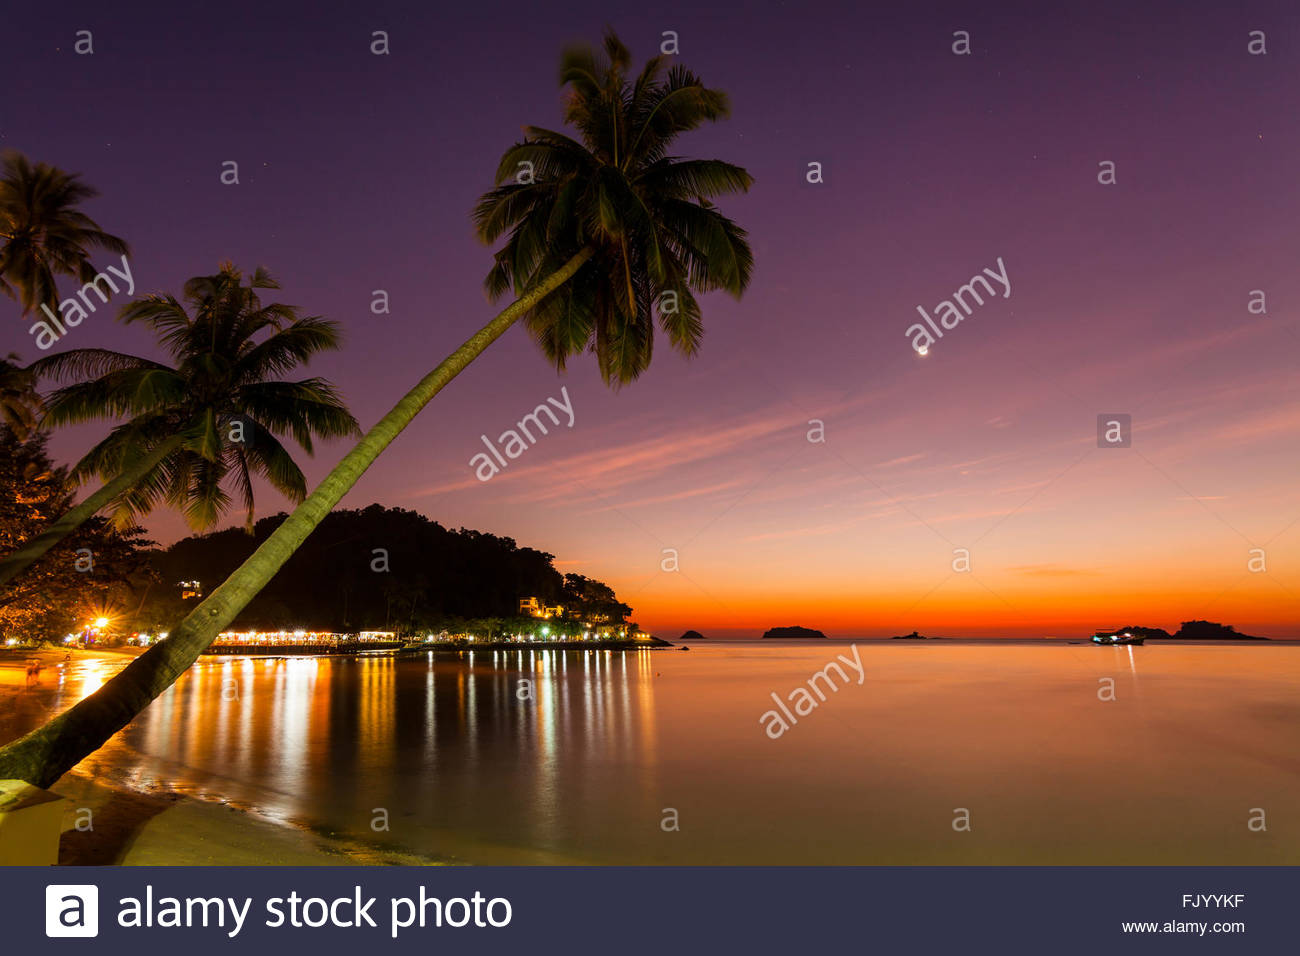 Romantic Evening on a tropical island with night illumination. Thailand. Stock Photo